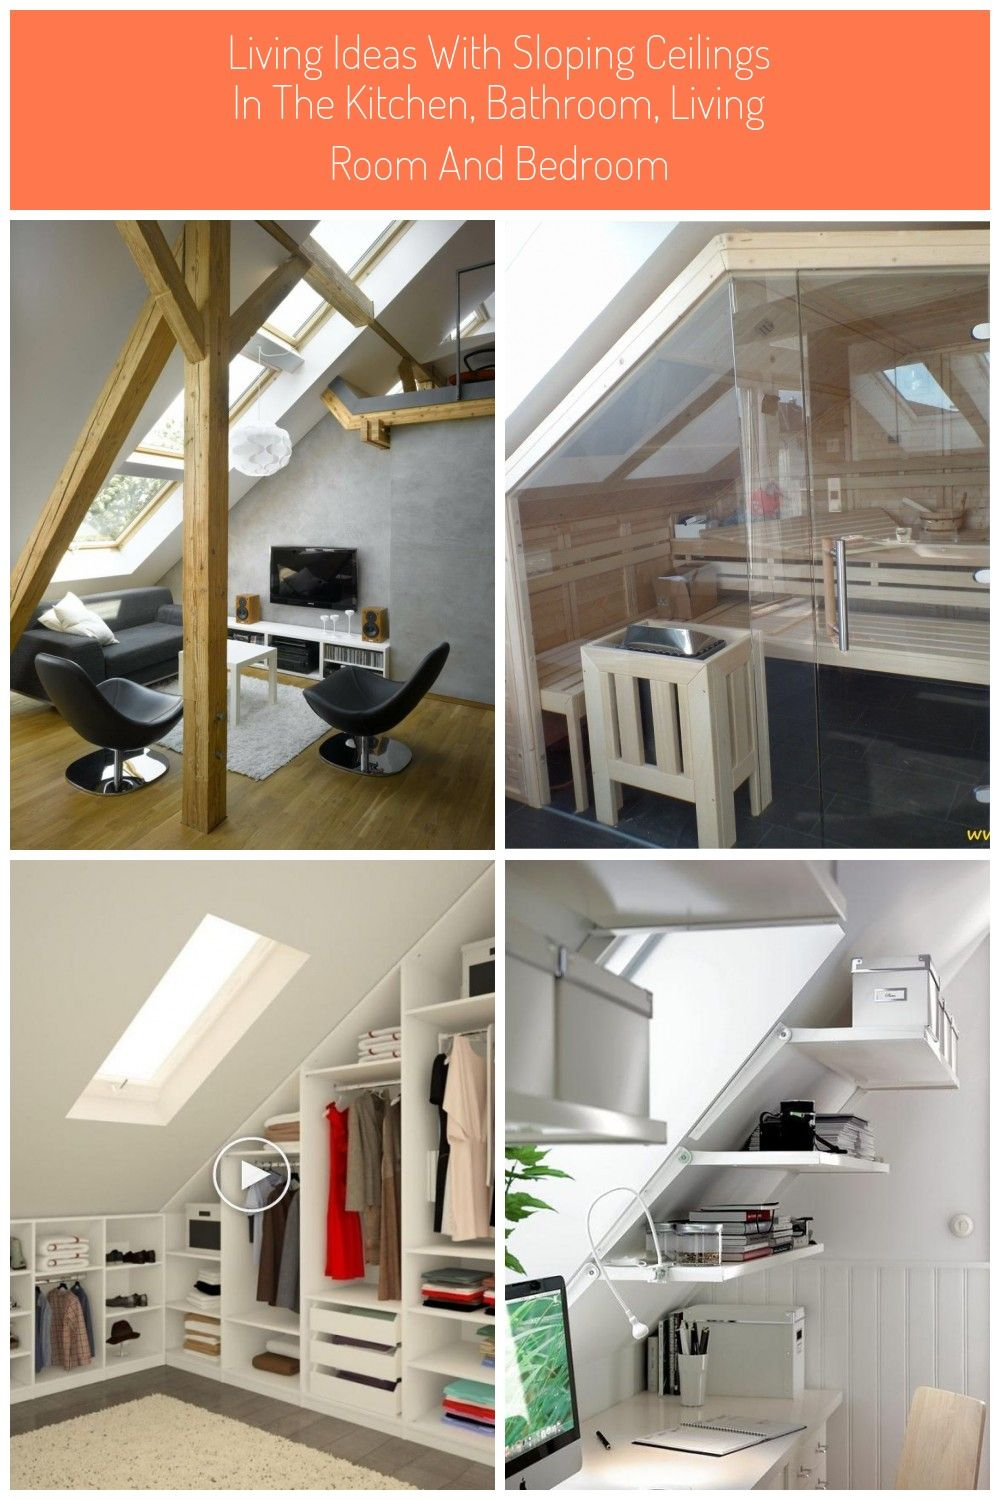 Living Ideas With Sloping Ceilings In The Kitchen Bathroom Living Room And Bedroom